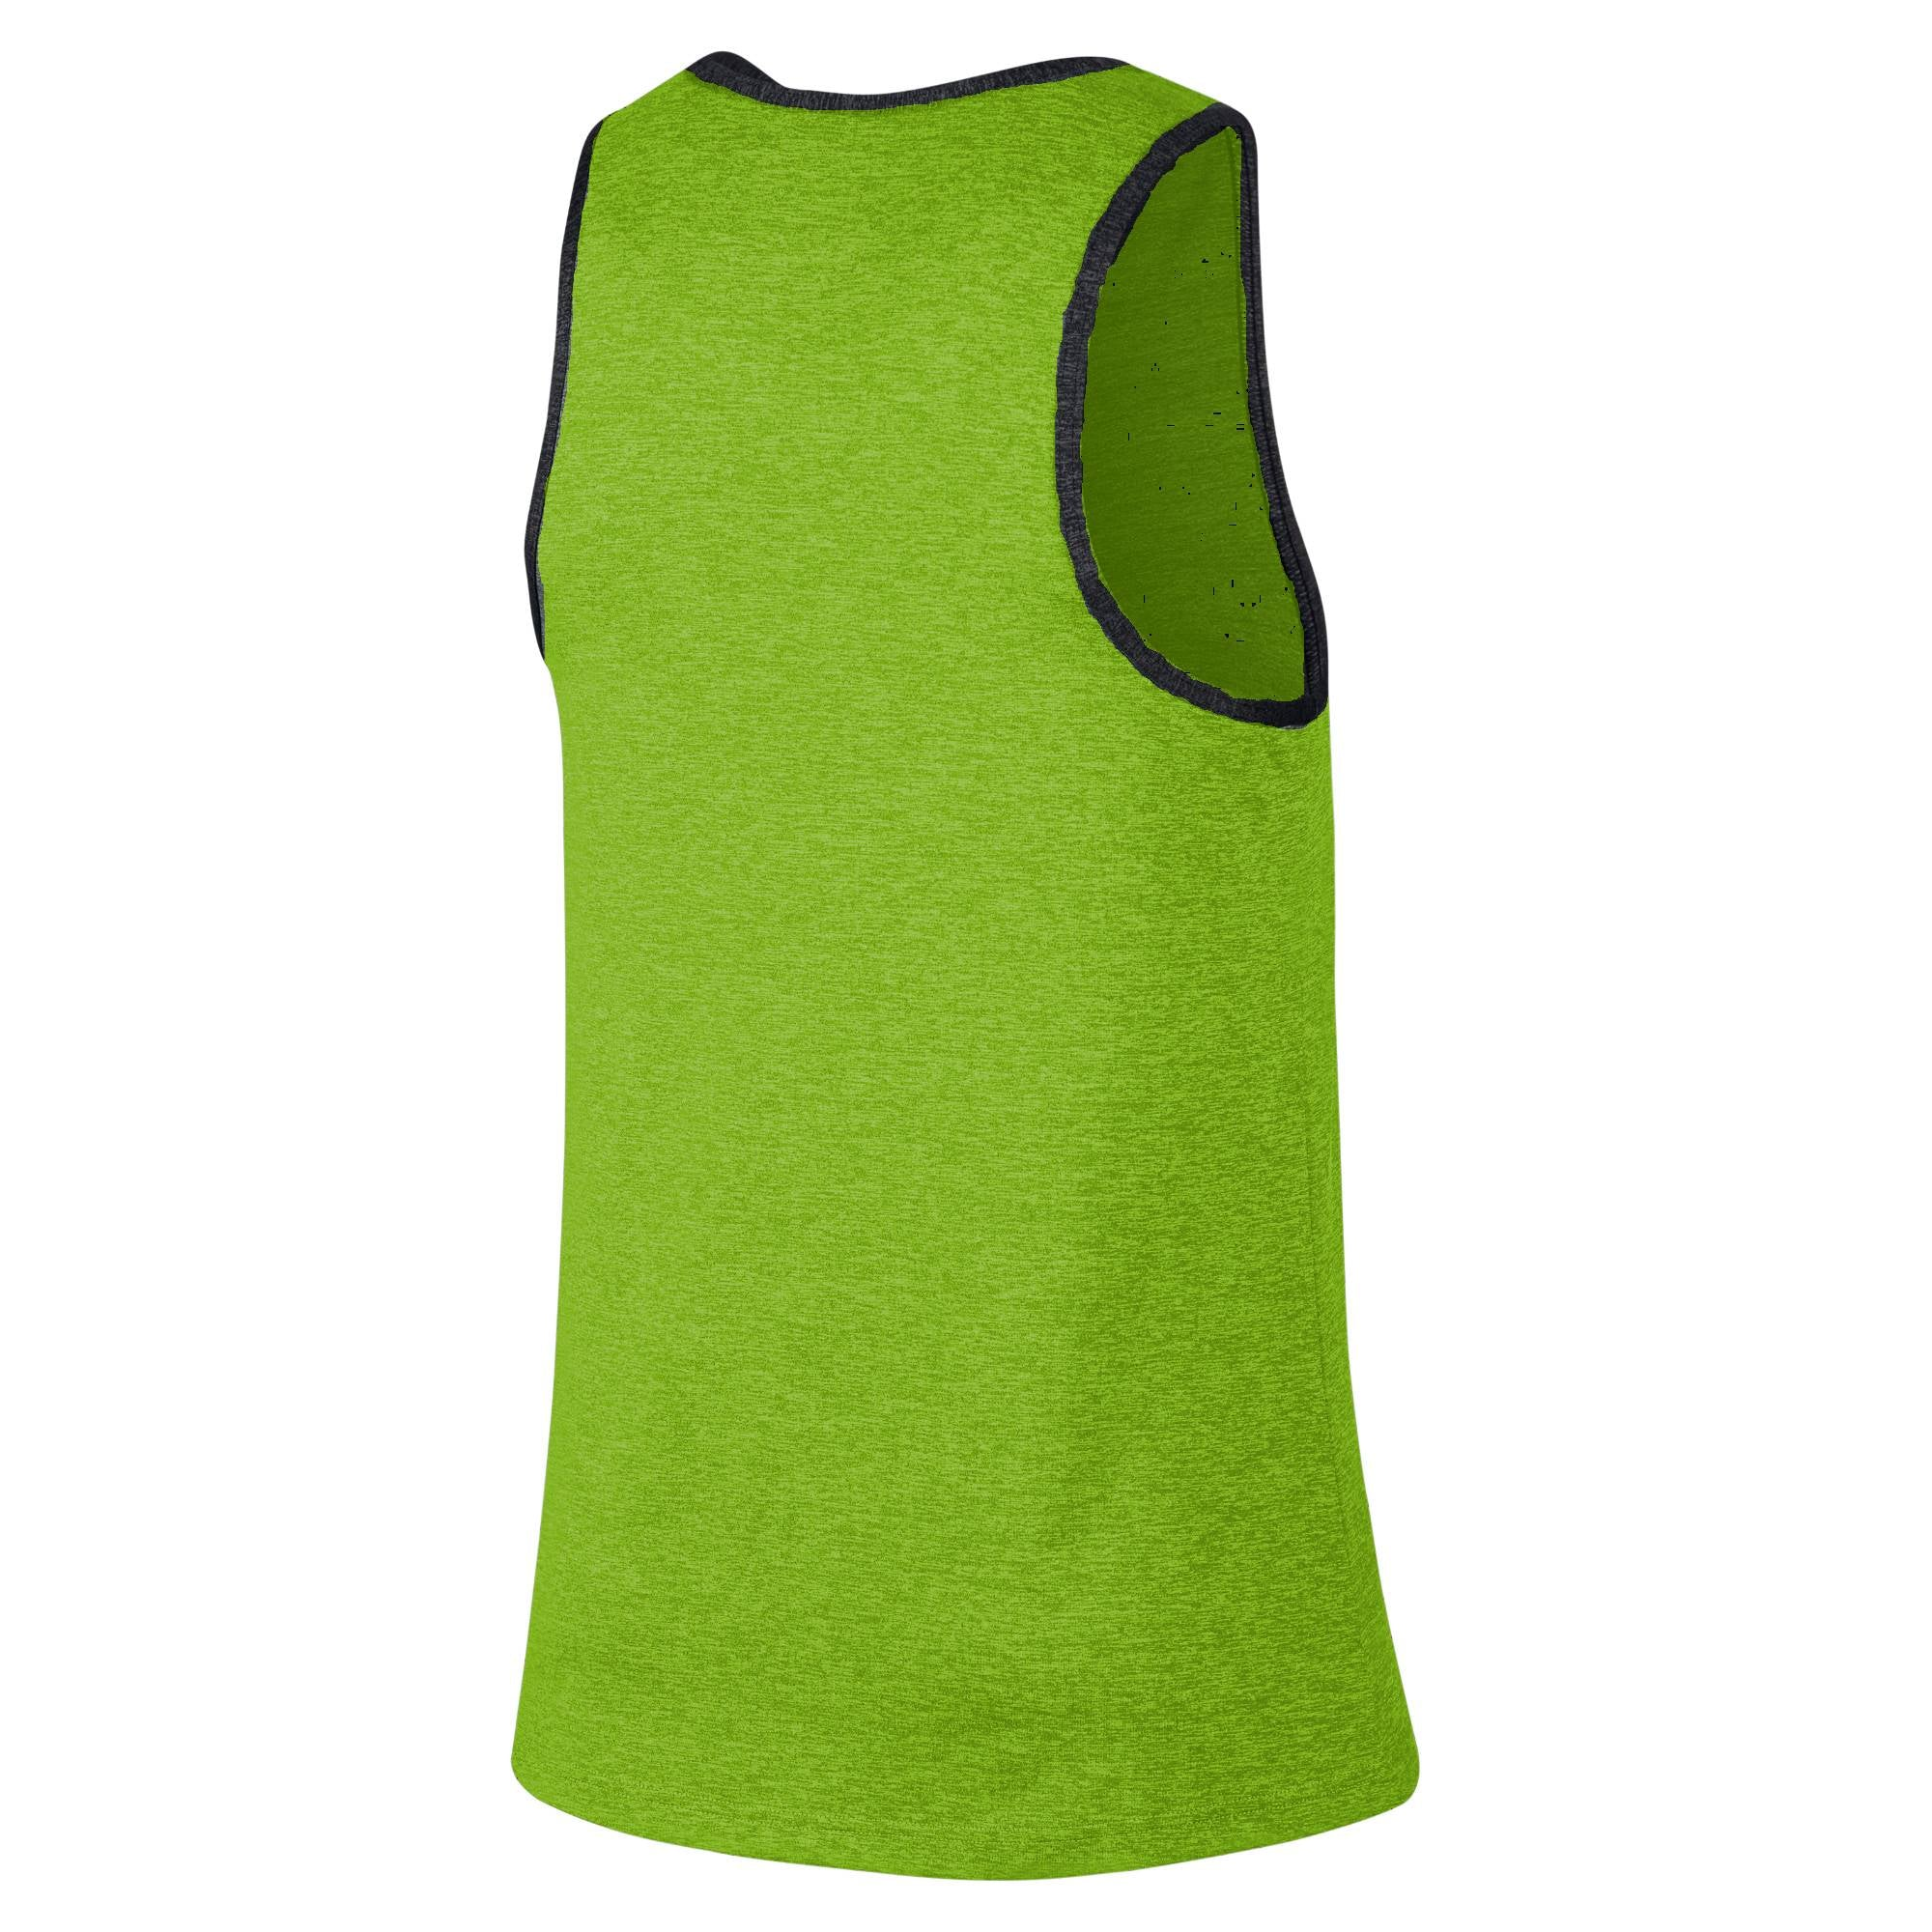 Nike Basketball Hyper Elite Knit Basketball Sleeveless Top - Action Green/Green Spark/Metallic Silver